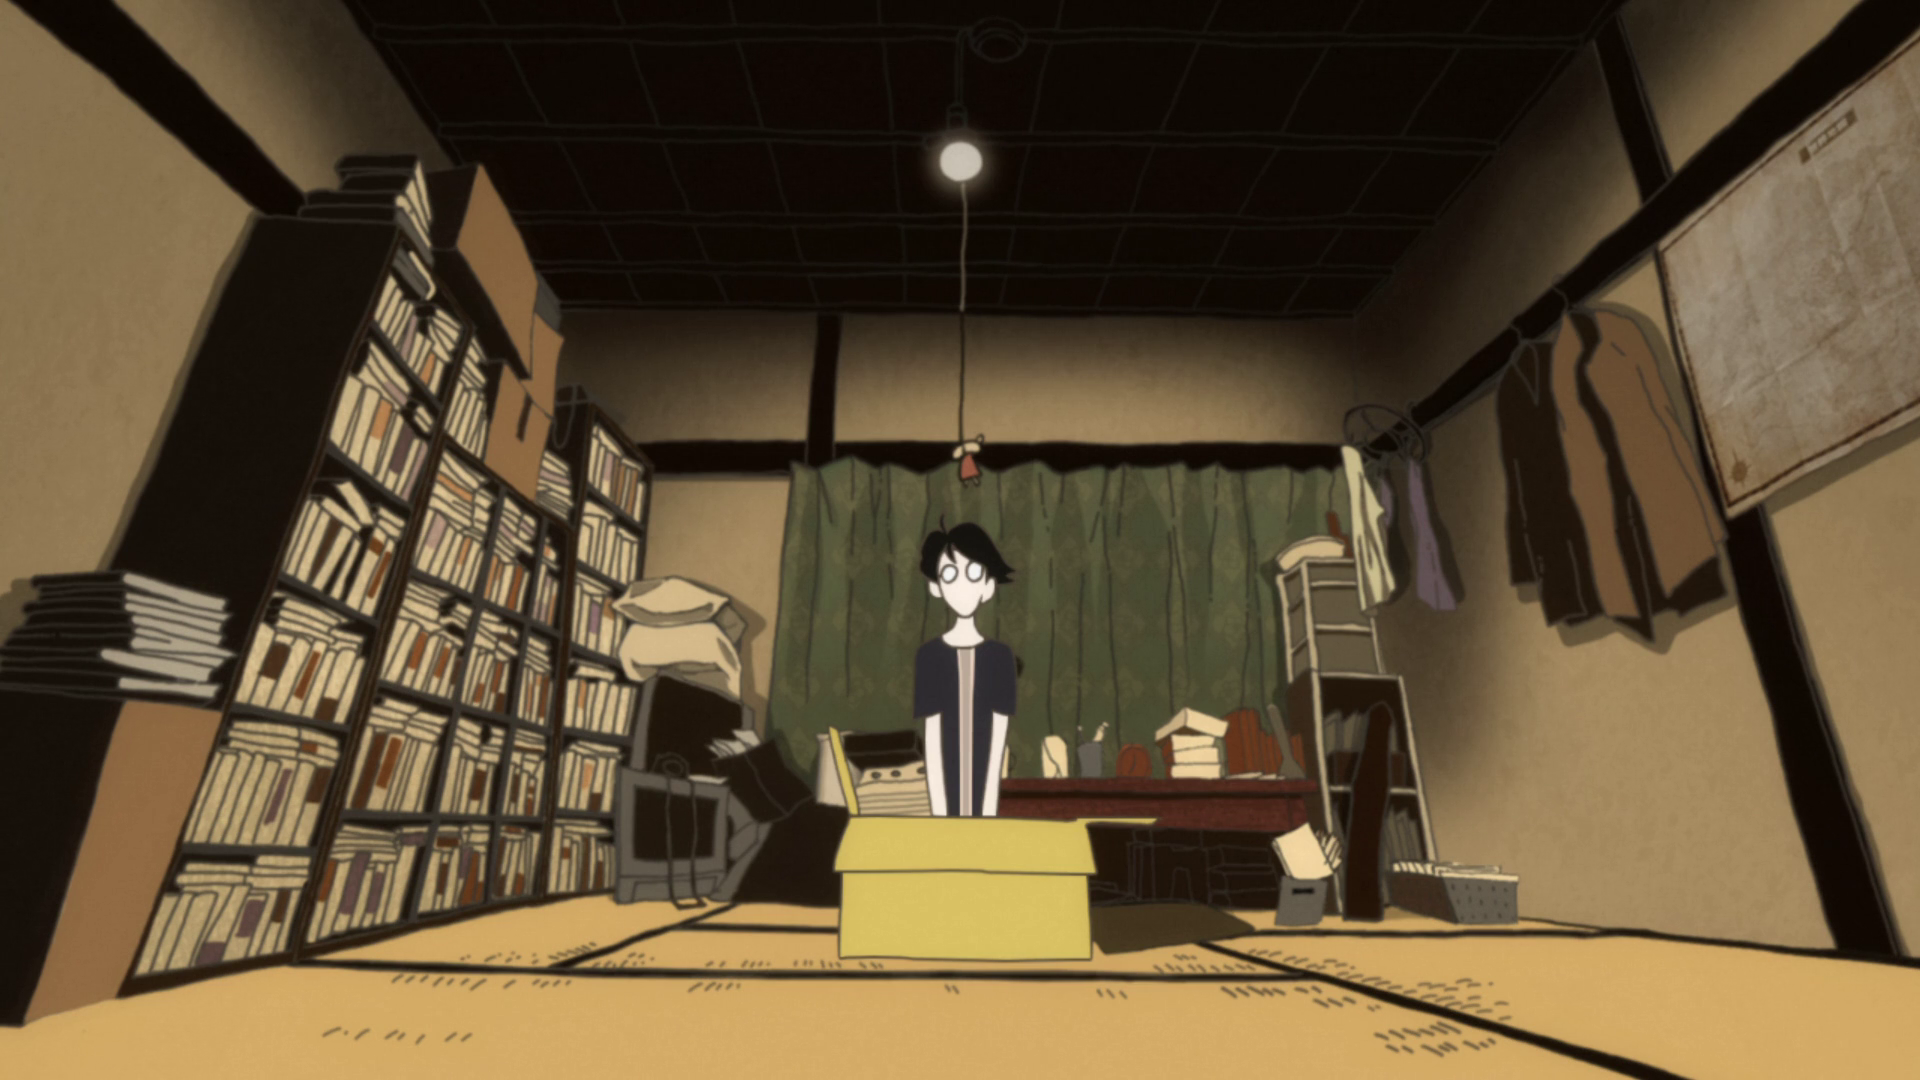 My favourite shots from The Tatami Galaxy   Tatami galaxy, Home screen pictures, Anime background